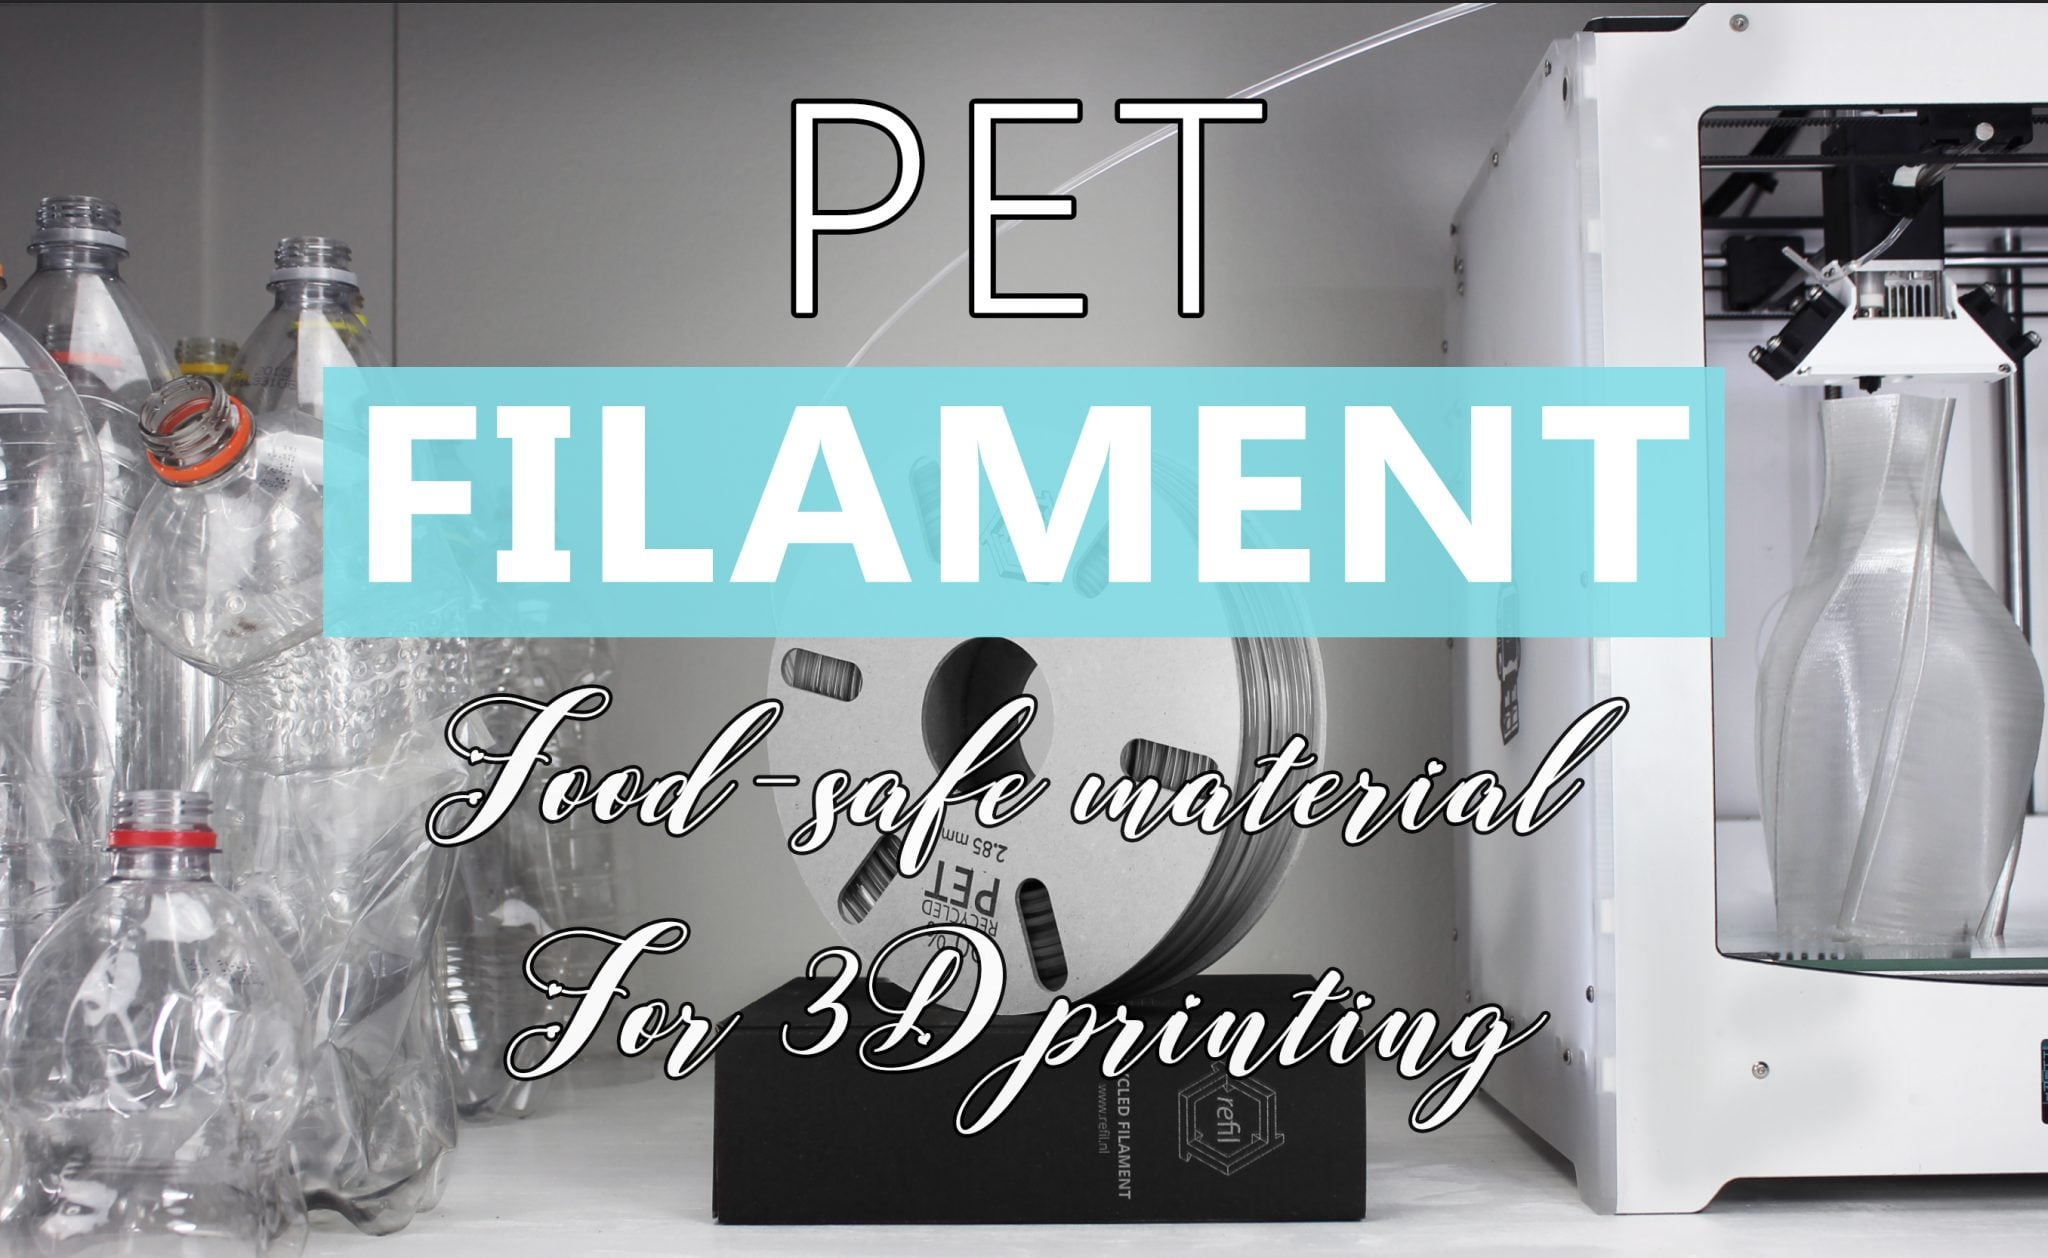 PET Filament: Waterproof and Food-Safe Material Plastic for 3D Printing